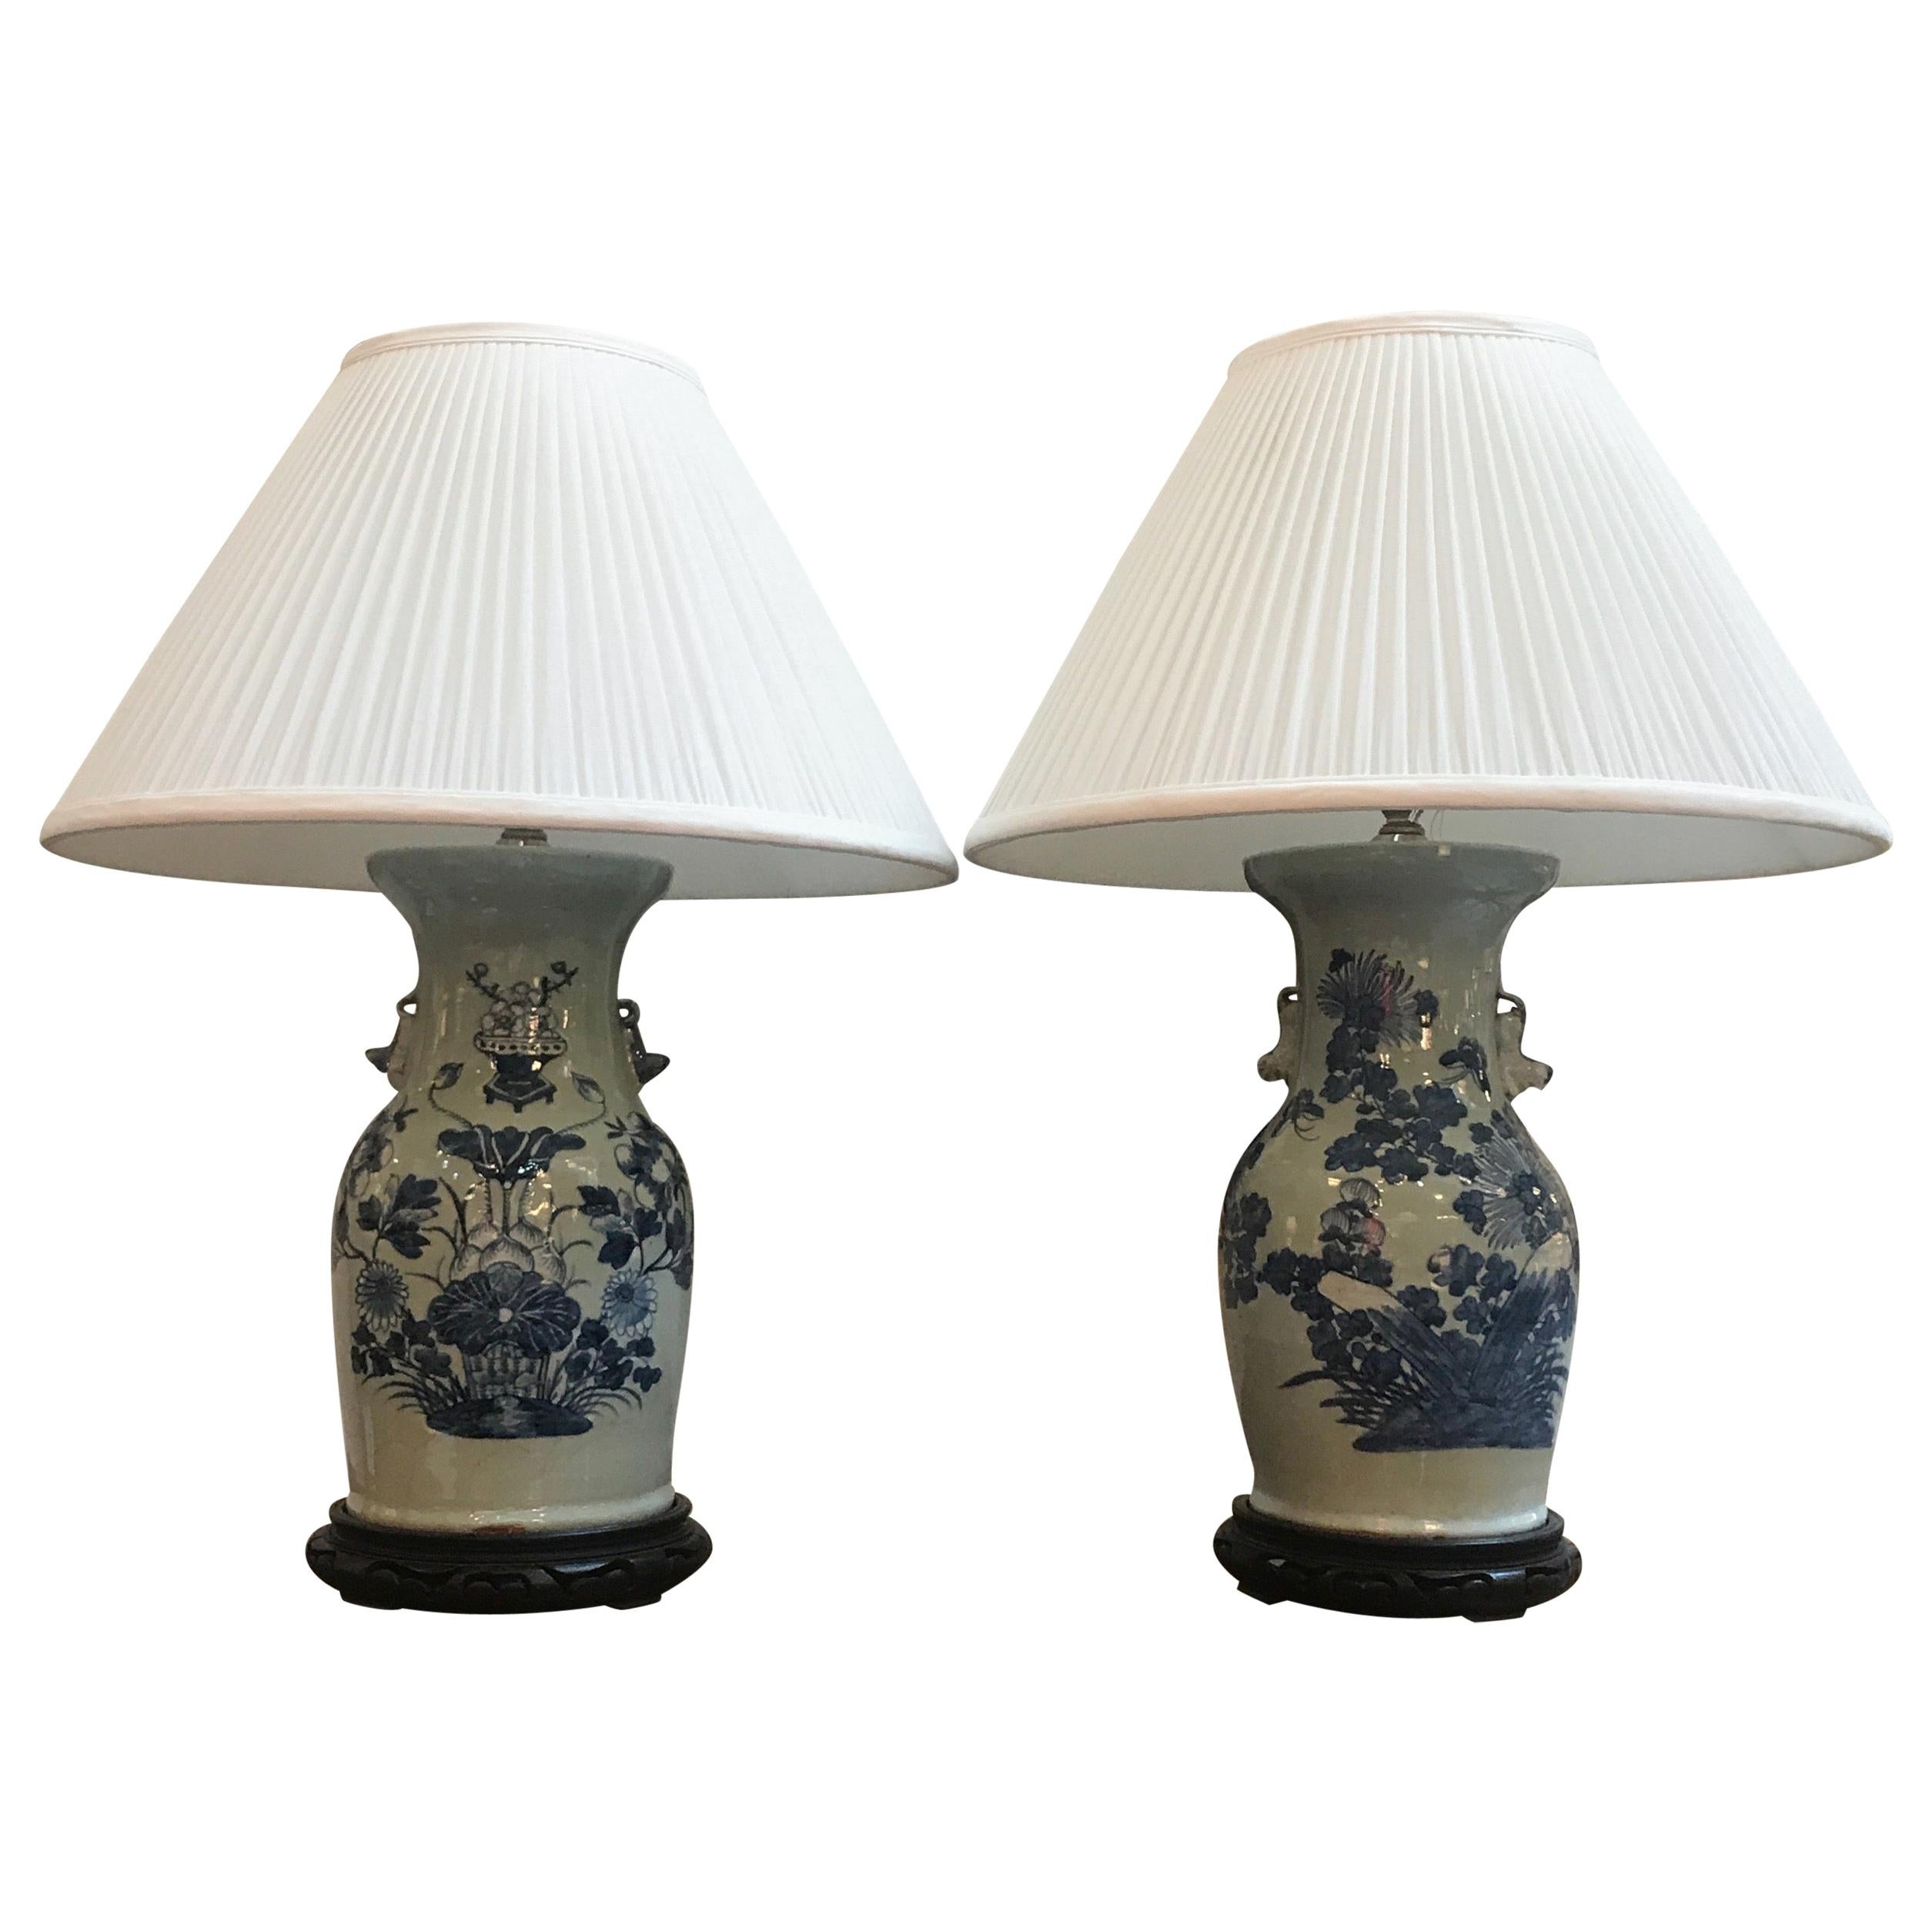 Pair of Classic Blue and White Chinese Porcelain Lamps